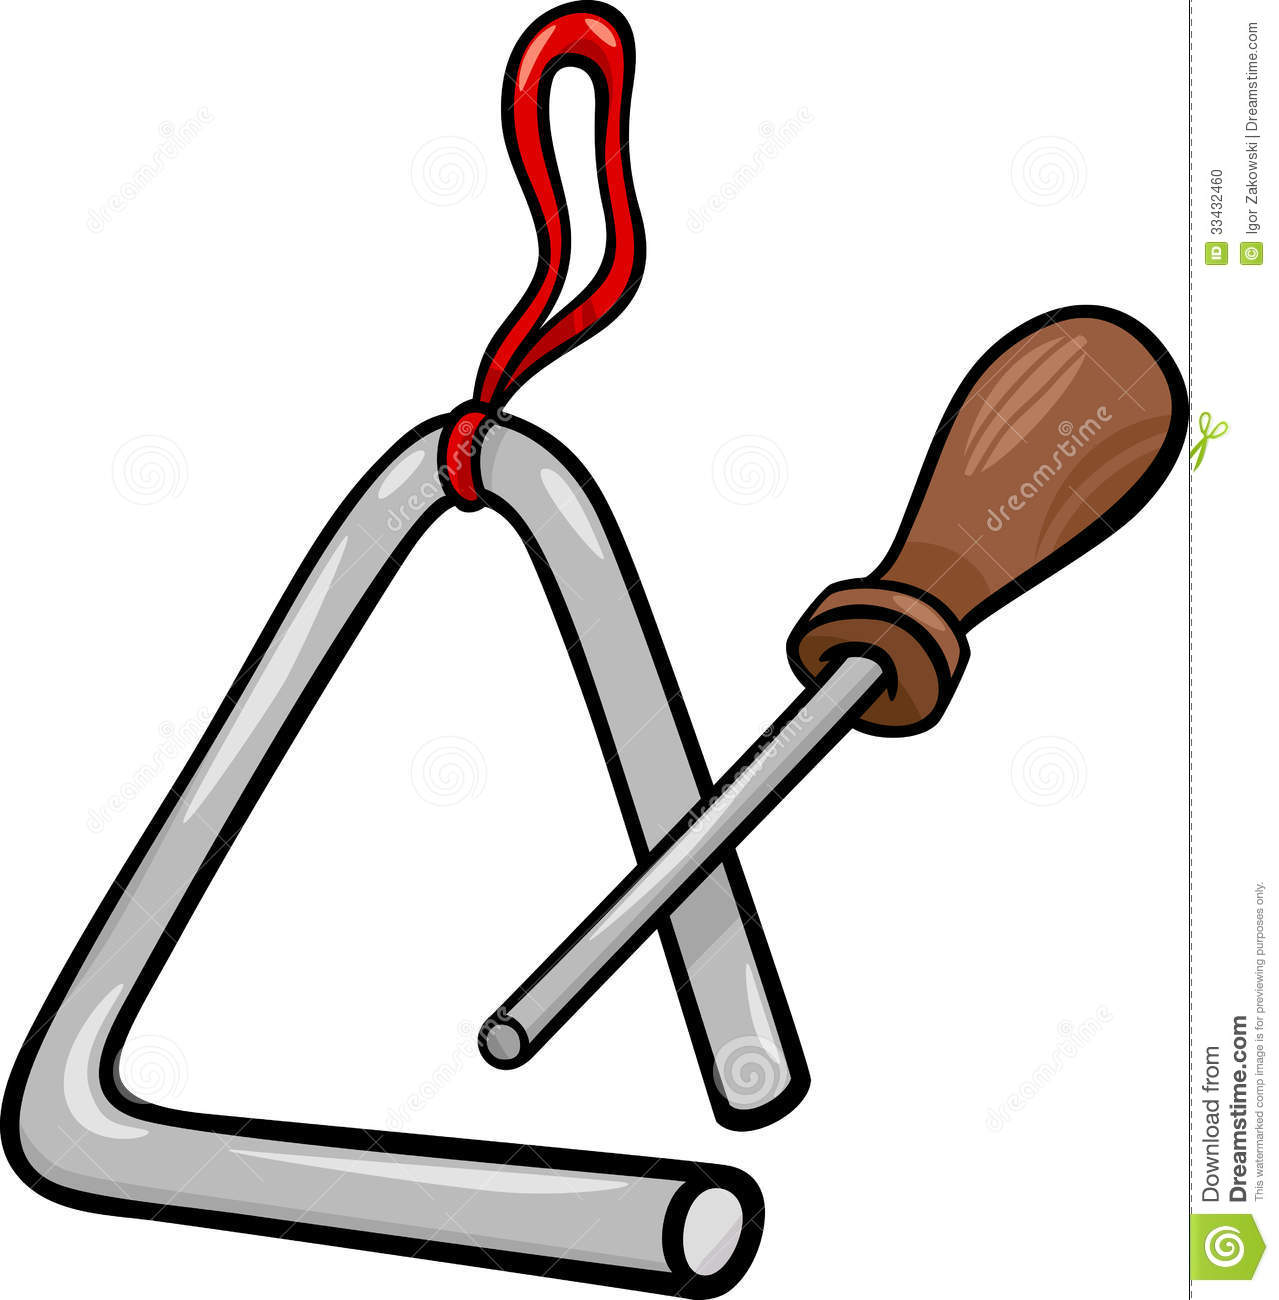 Consumption Clipart 20 Free Cliparts: Percussion Instrument Clipart 20 Free Cliparts